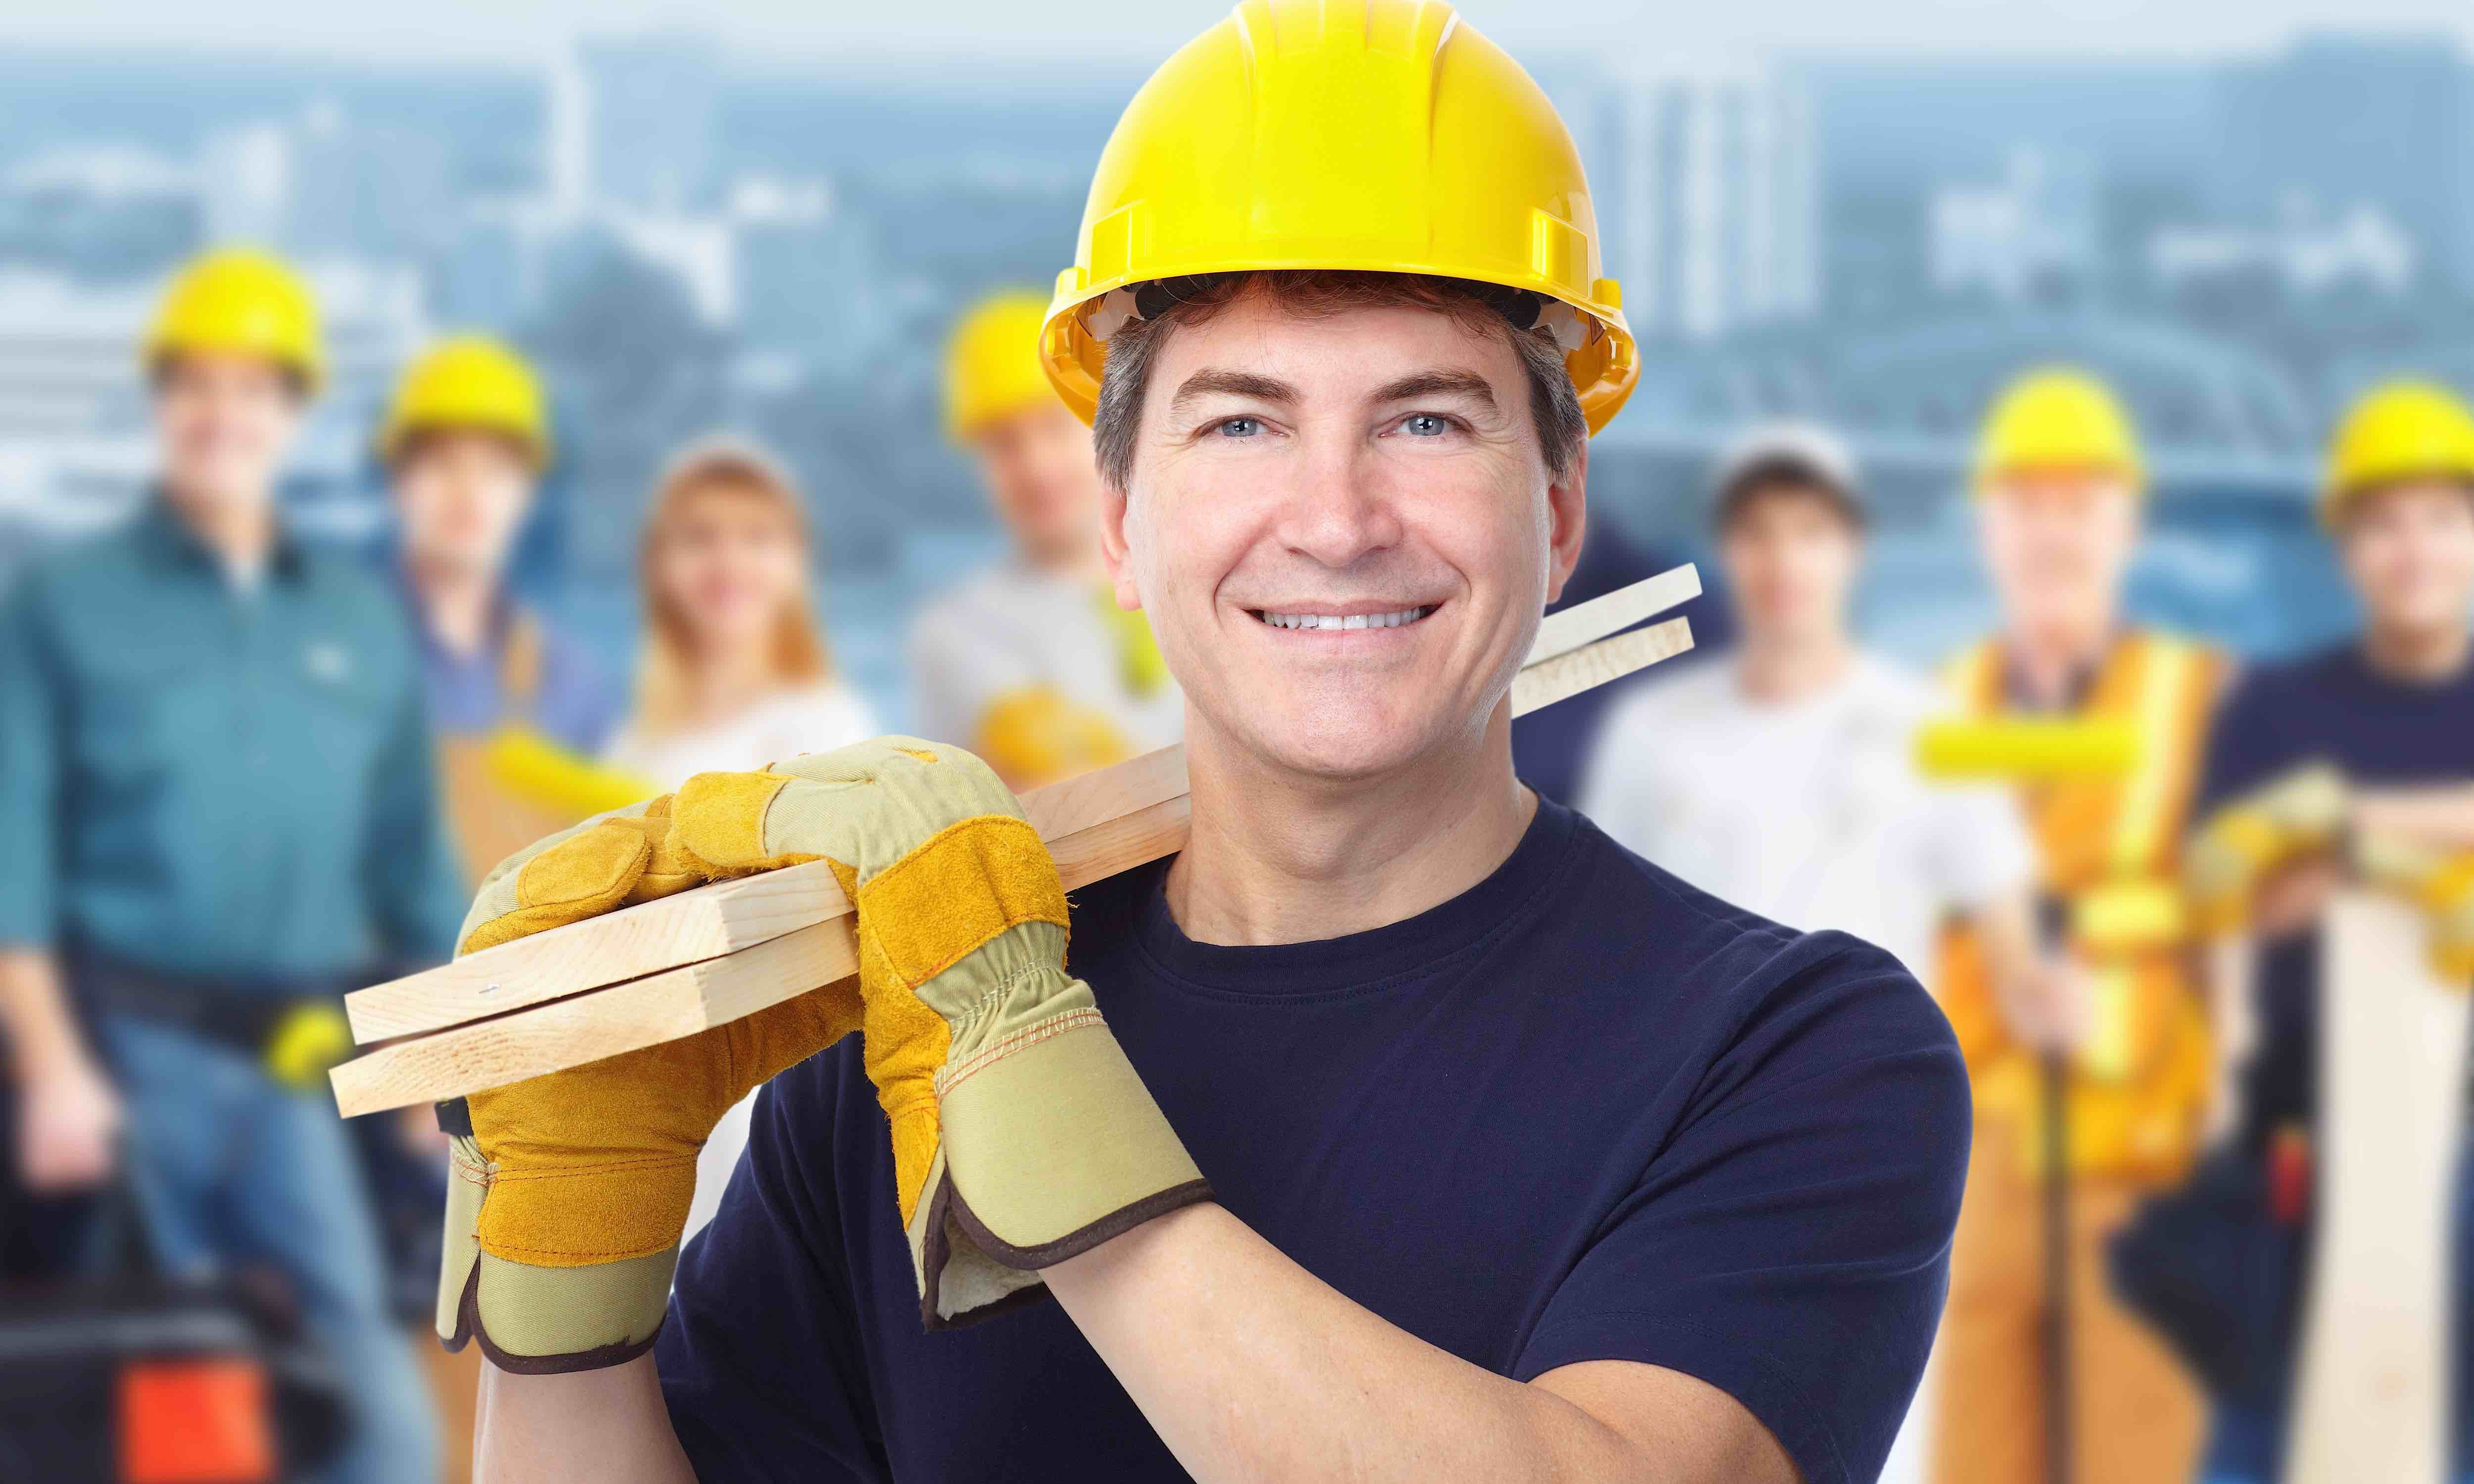 How To Find The Best Contractor For Your Next Project